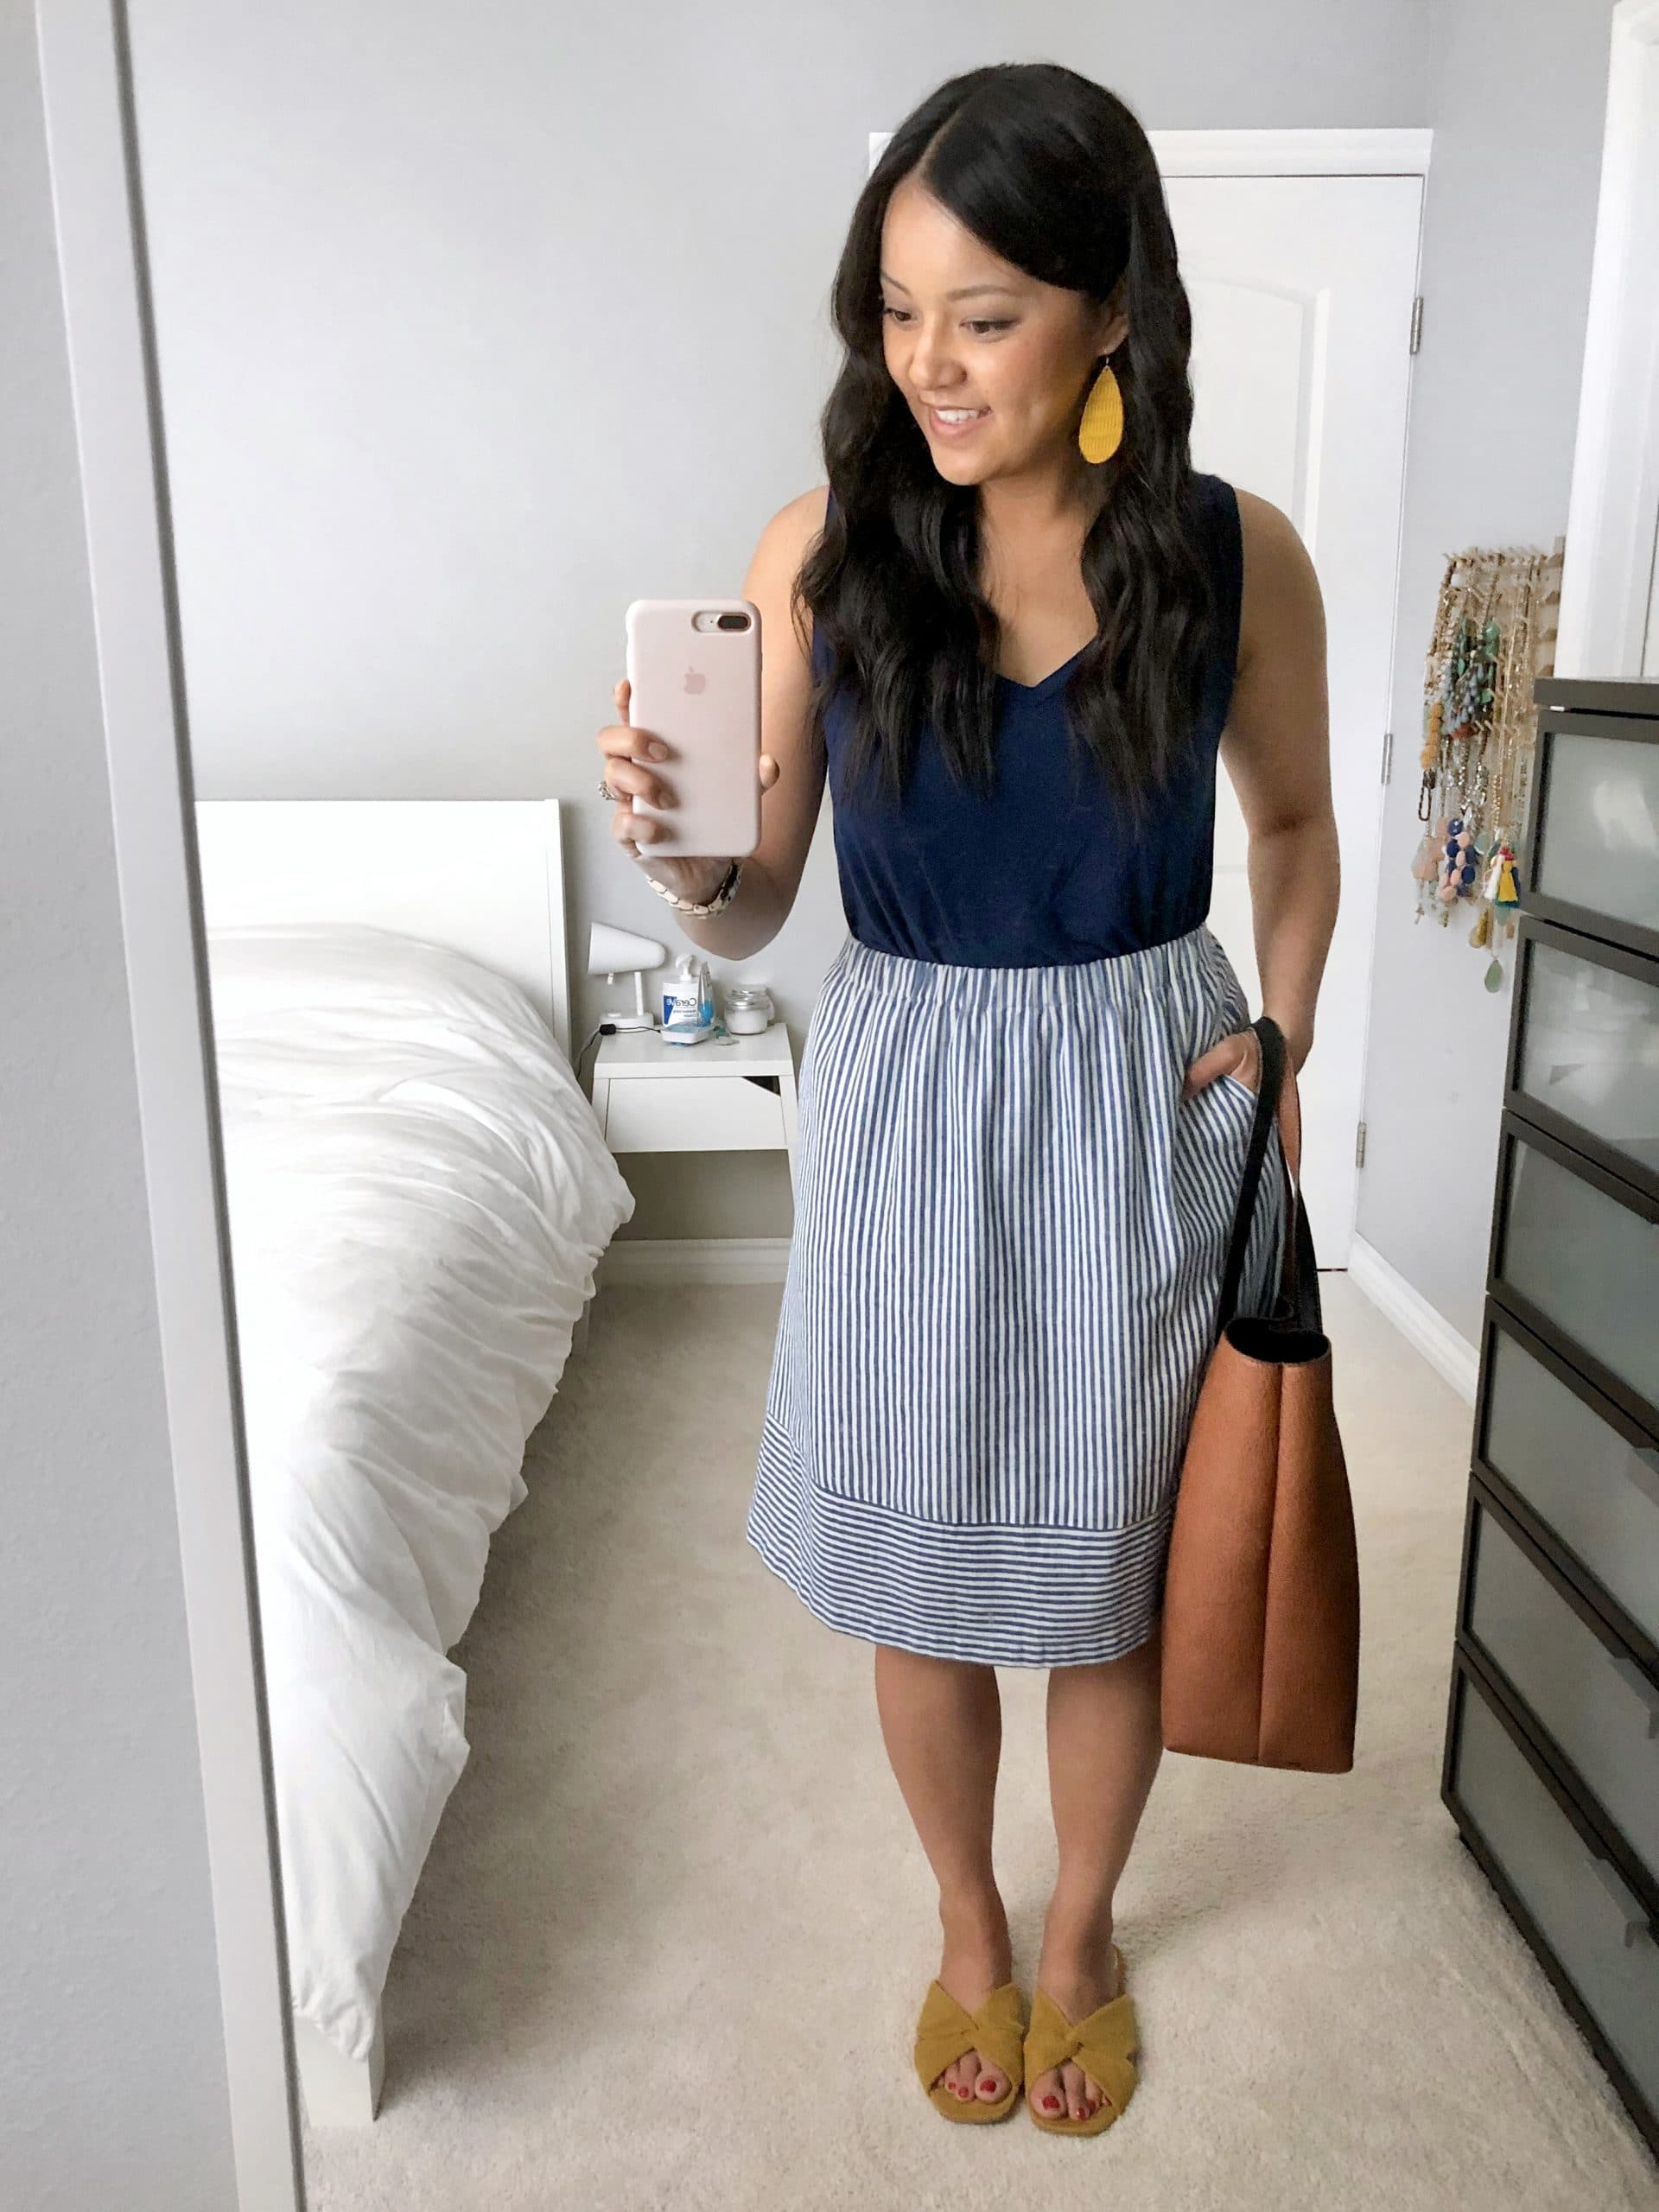 Summer Skirt Outfit: navy v-neck tank + navy striped skirt + yellow slide sandals + tan crossbody bag + yellow leather earrings